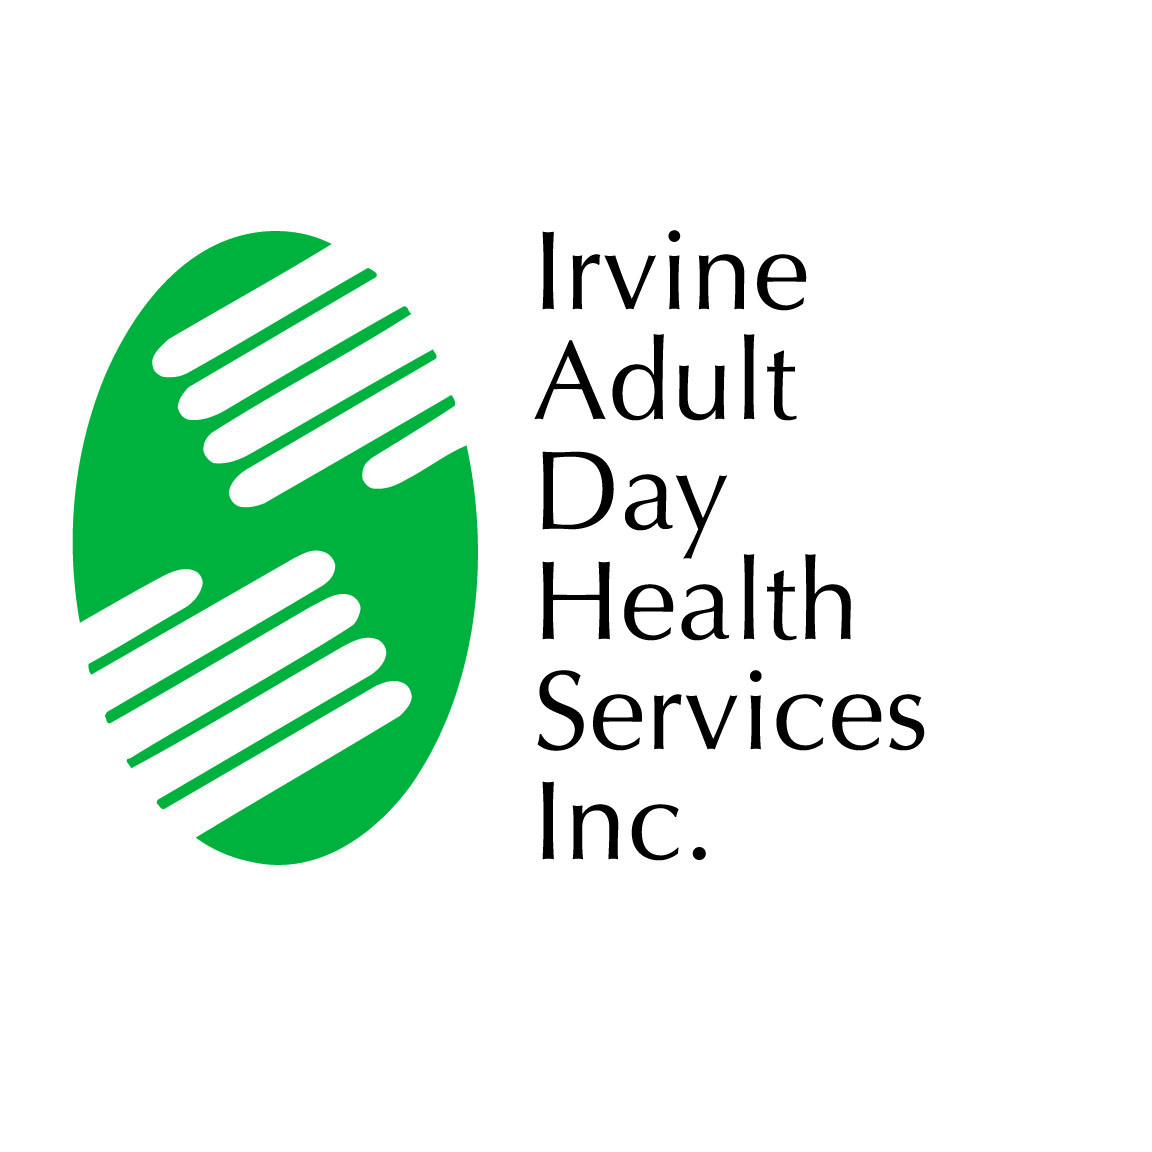 Irvine Adult Day Health Services